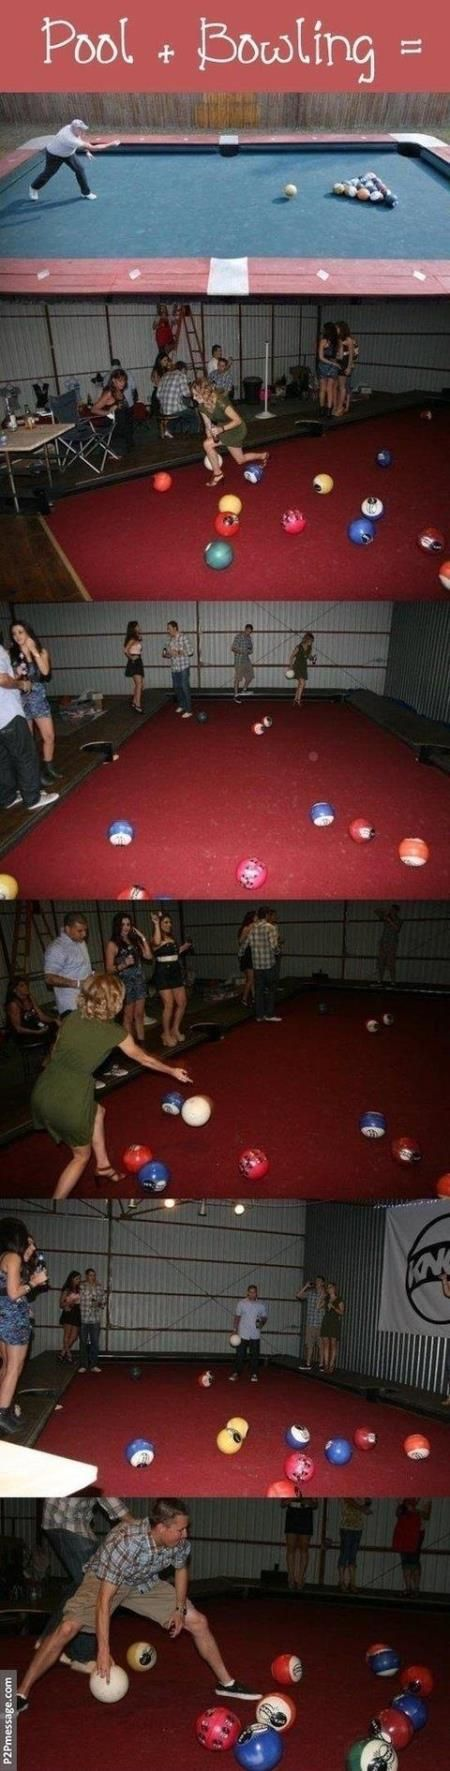 Pool and bowing combined is awesome. Click to see more and comment...